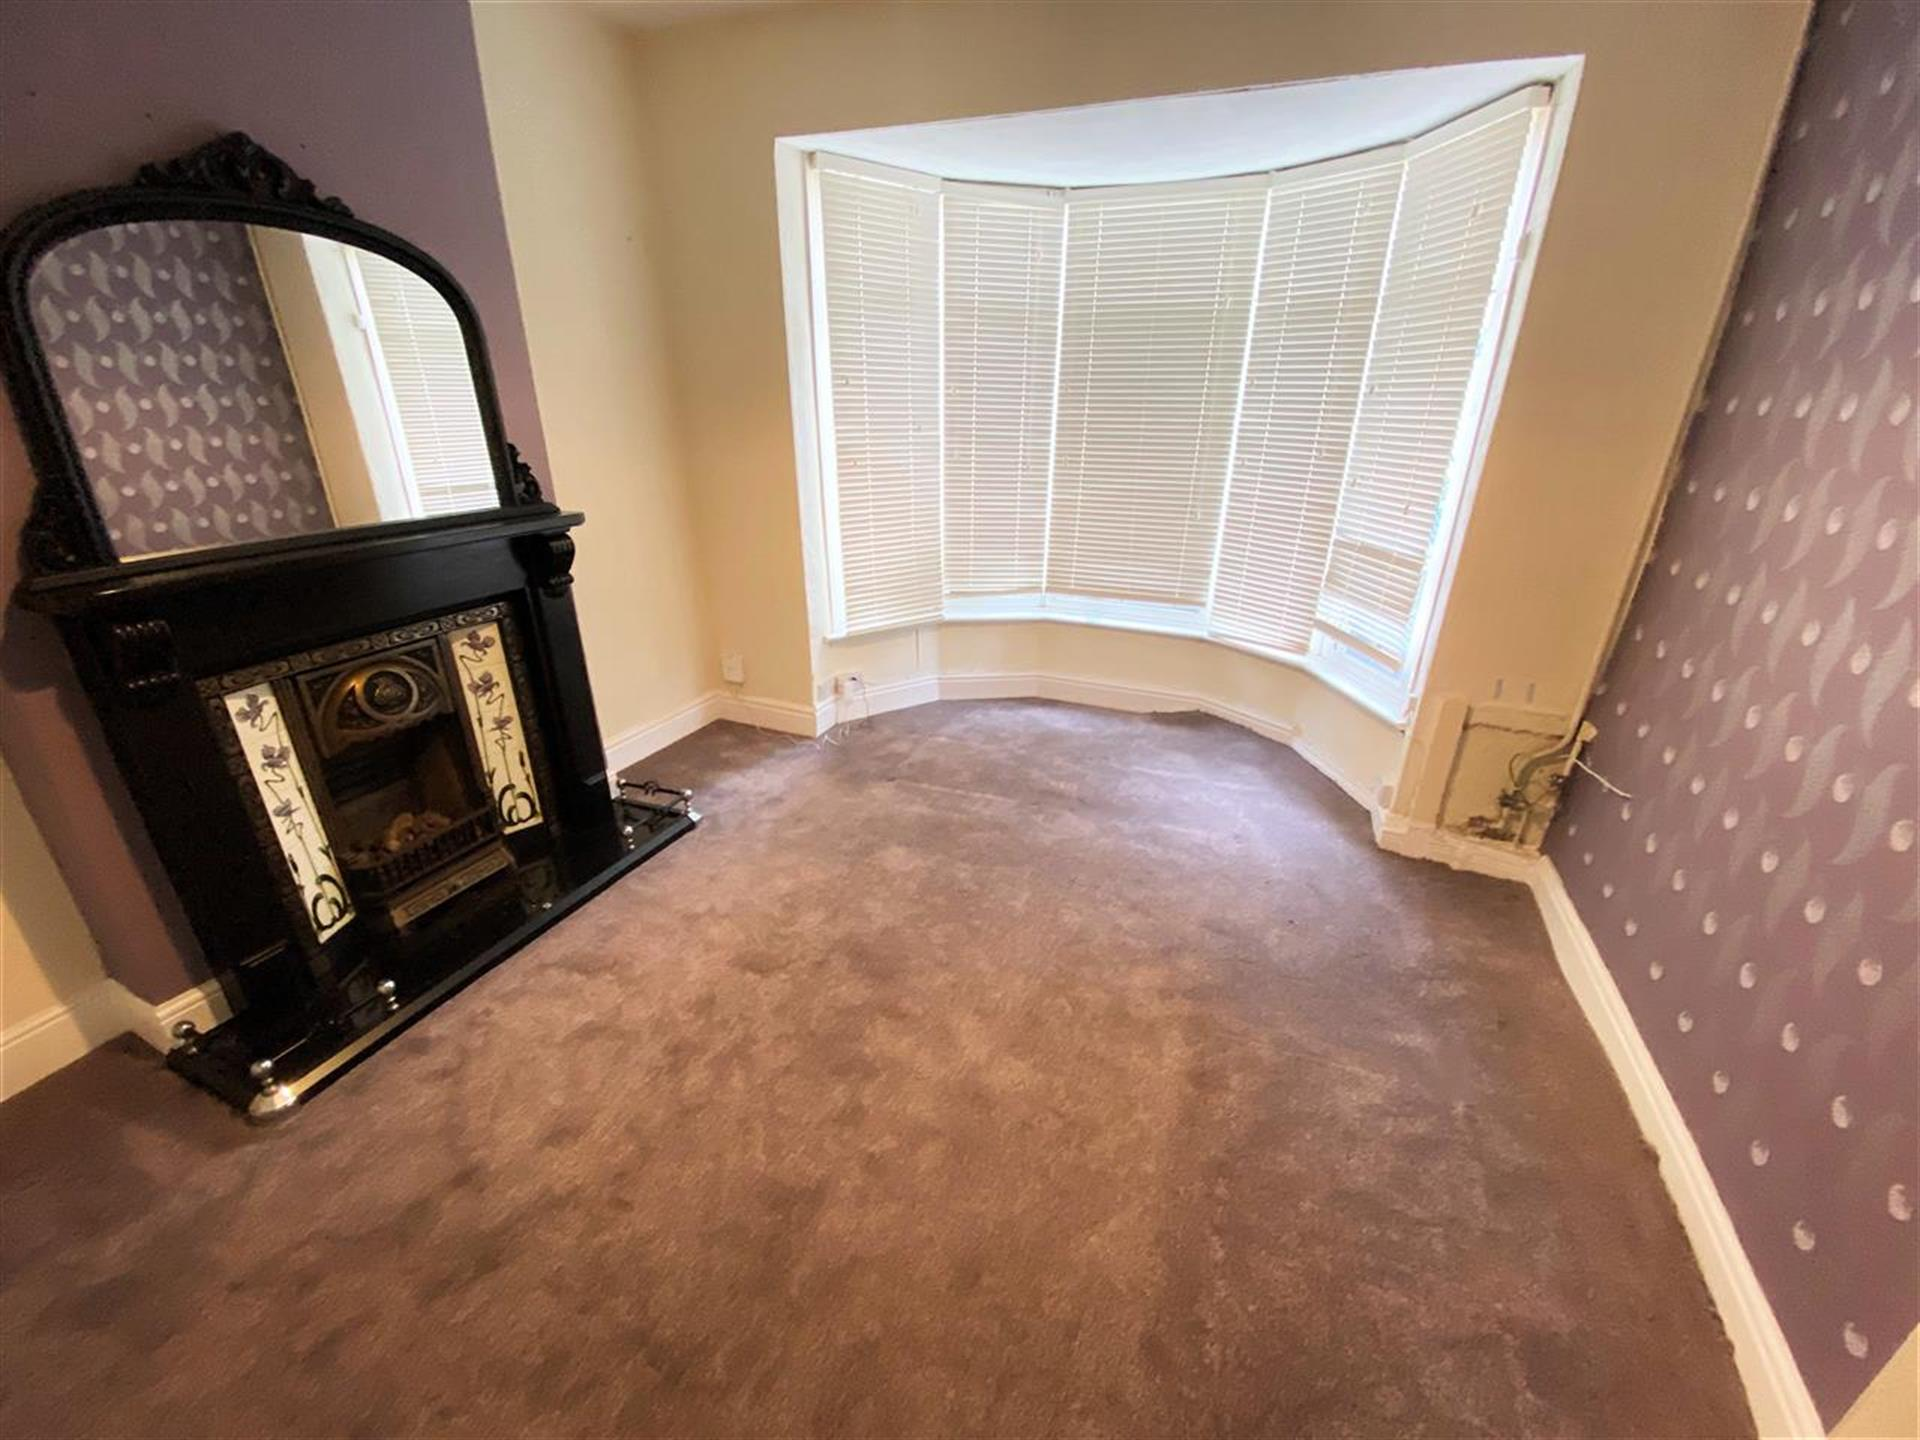 3 Bedroom Terraced House To Rent - Image 1